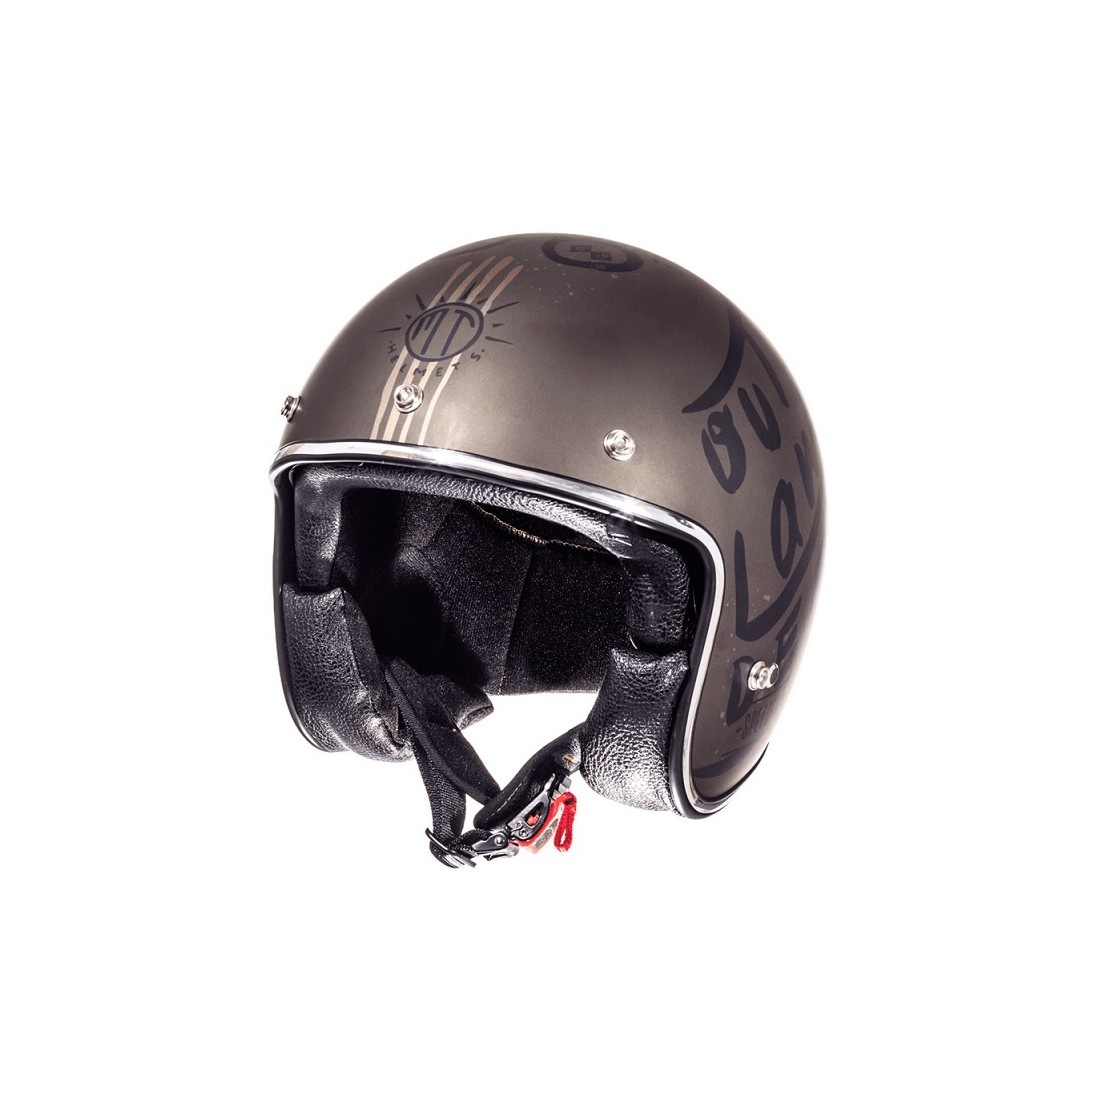 Casco MT OF507SV LE MANS 2 SV OUTLANDER A0 Marrón Mate TALLA CASCO XS